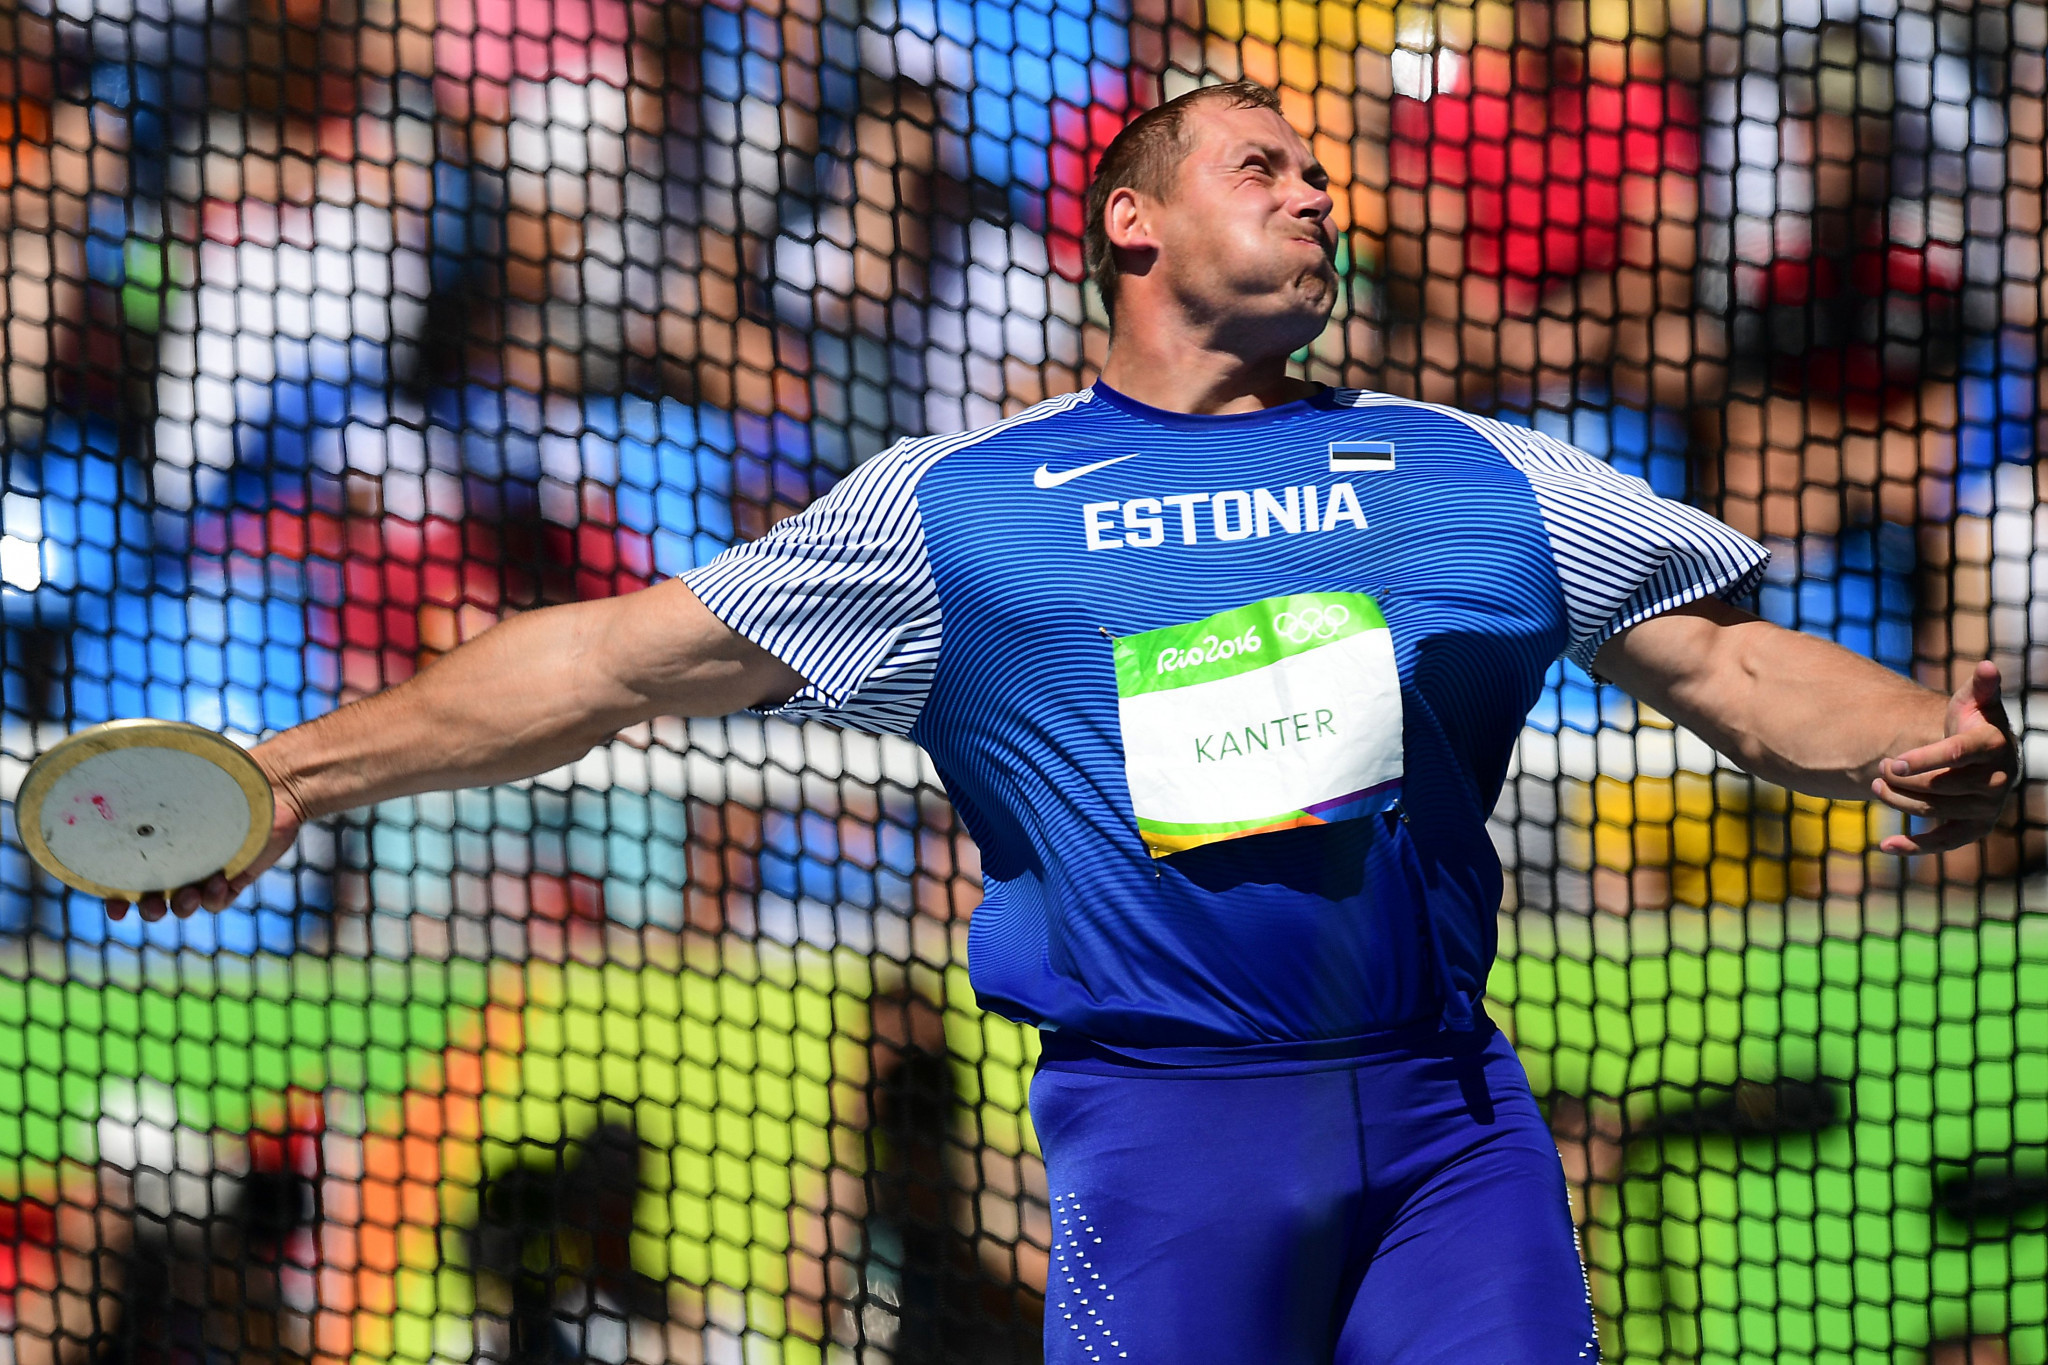 Kanter chosen as chairman of EOC Athletes' Commission